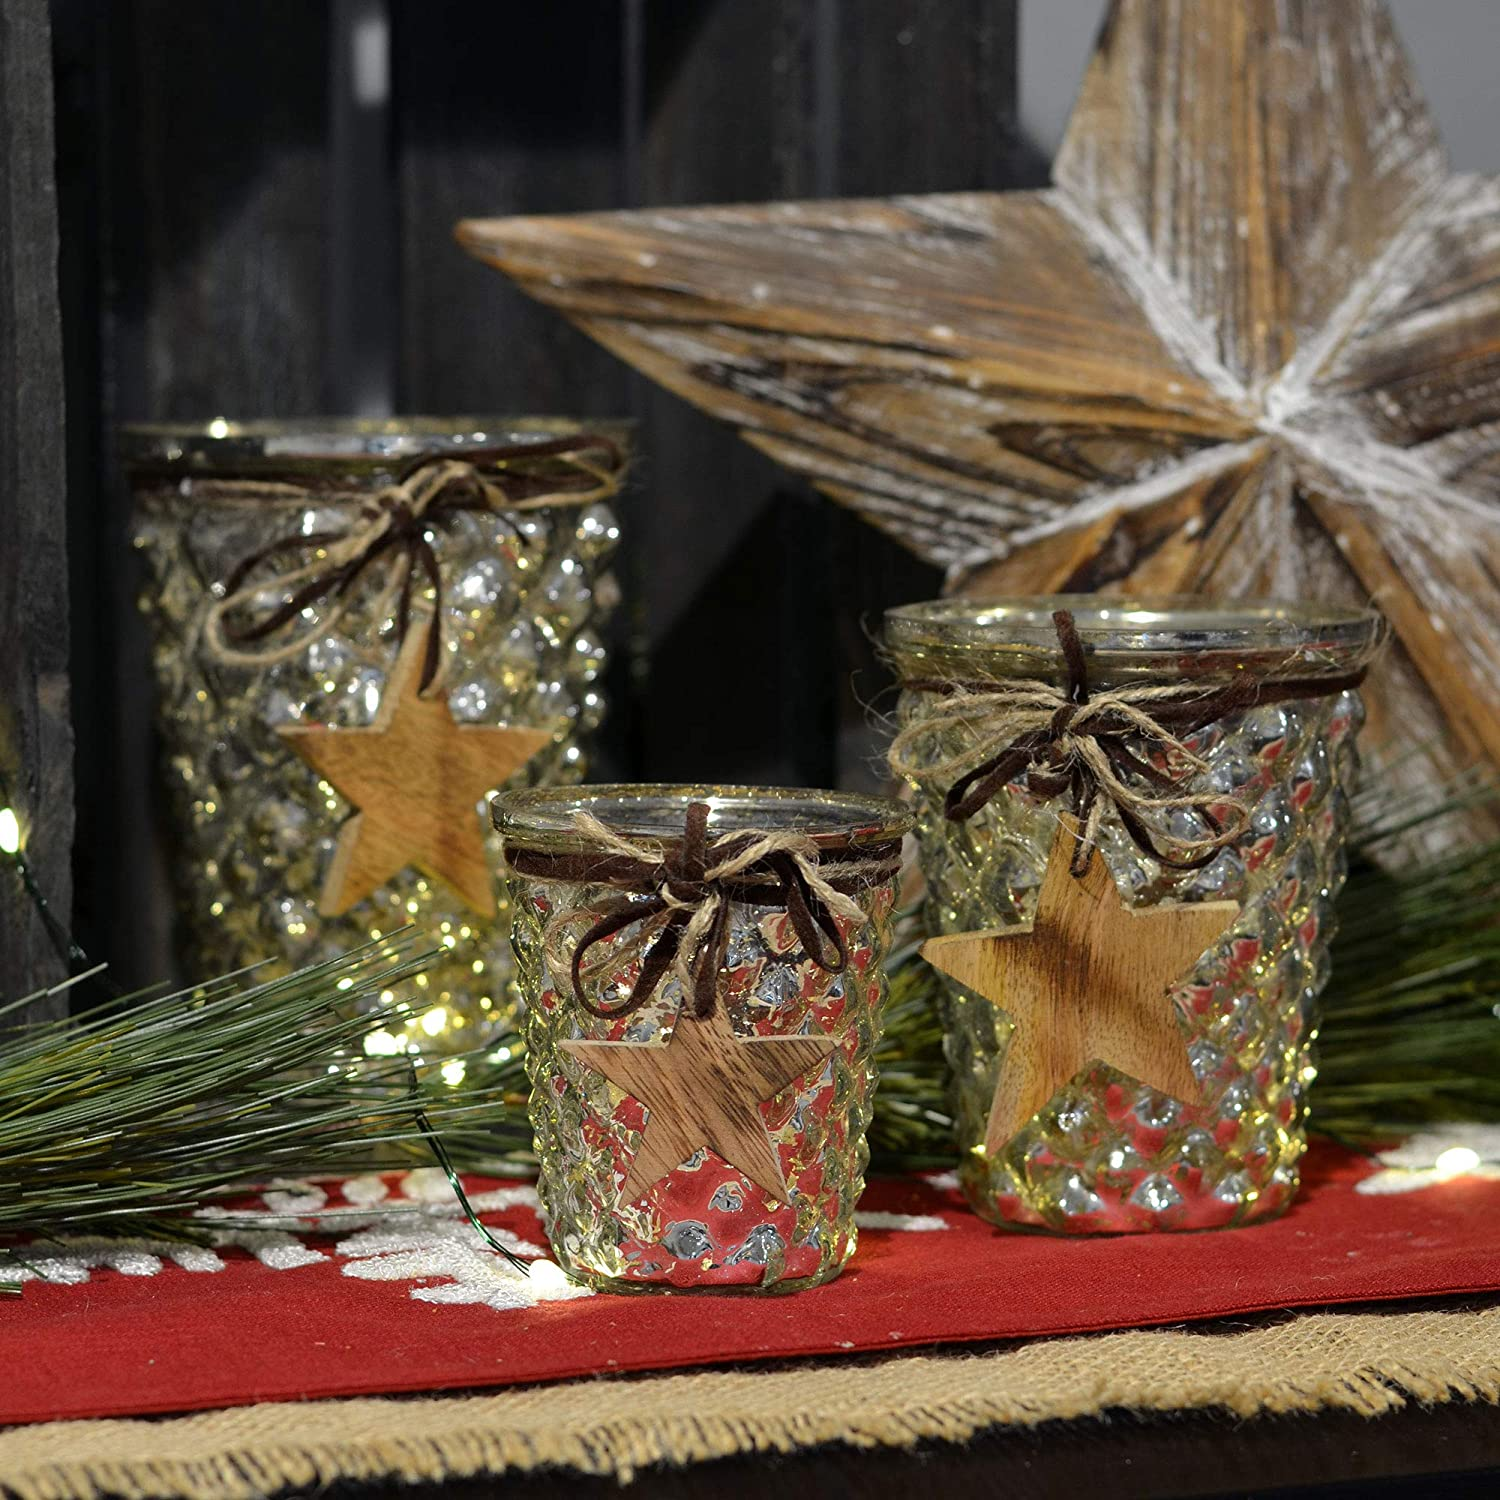 and 5 Inches 3 Twine and Faux Leather Wrapped Rustic Wooden Charms 4 WHW Whole House Worlds 3 Piece Silver Mercury Glass Candle Holders Hobnail Glass Hurricane Wind Lights Star Themed